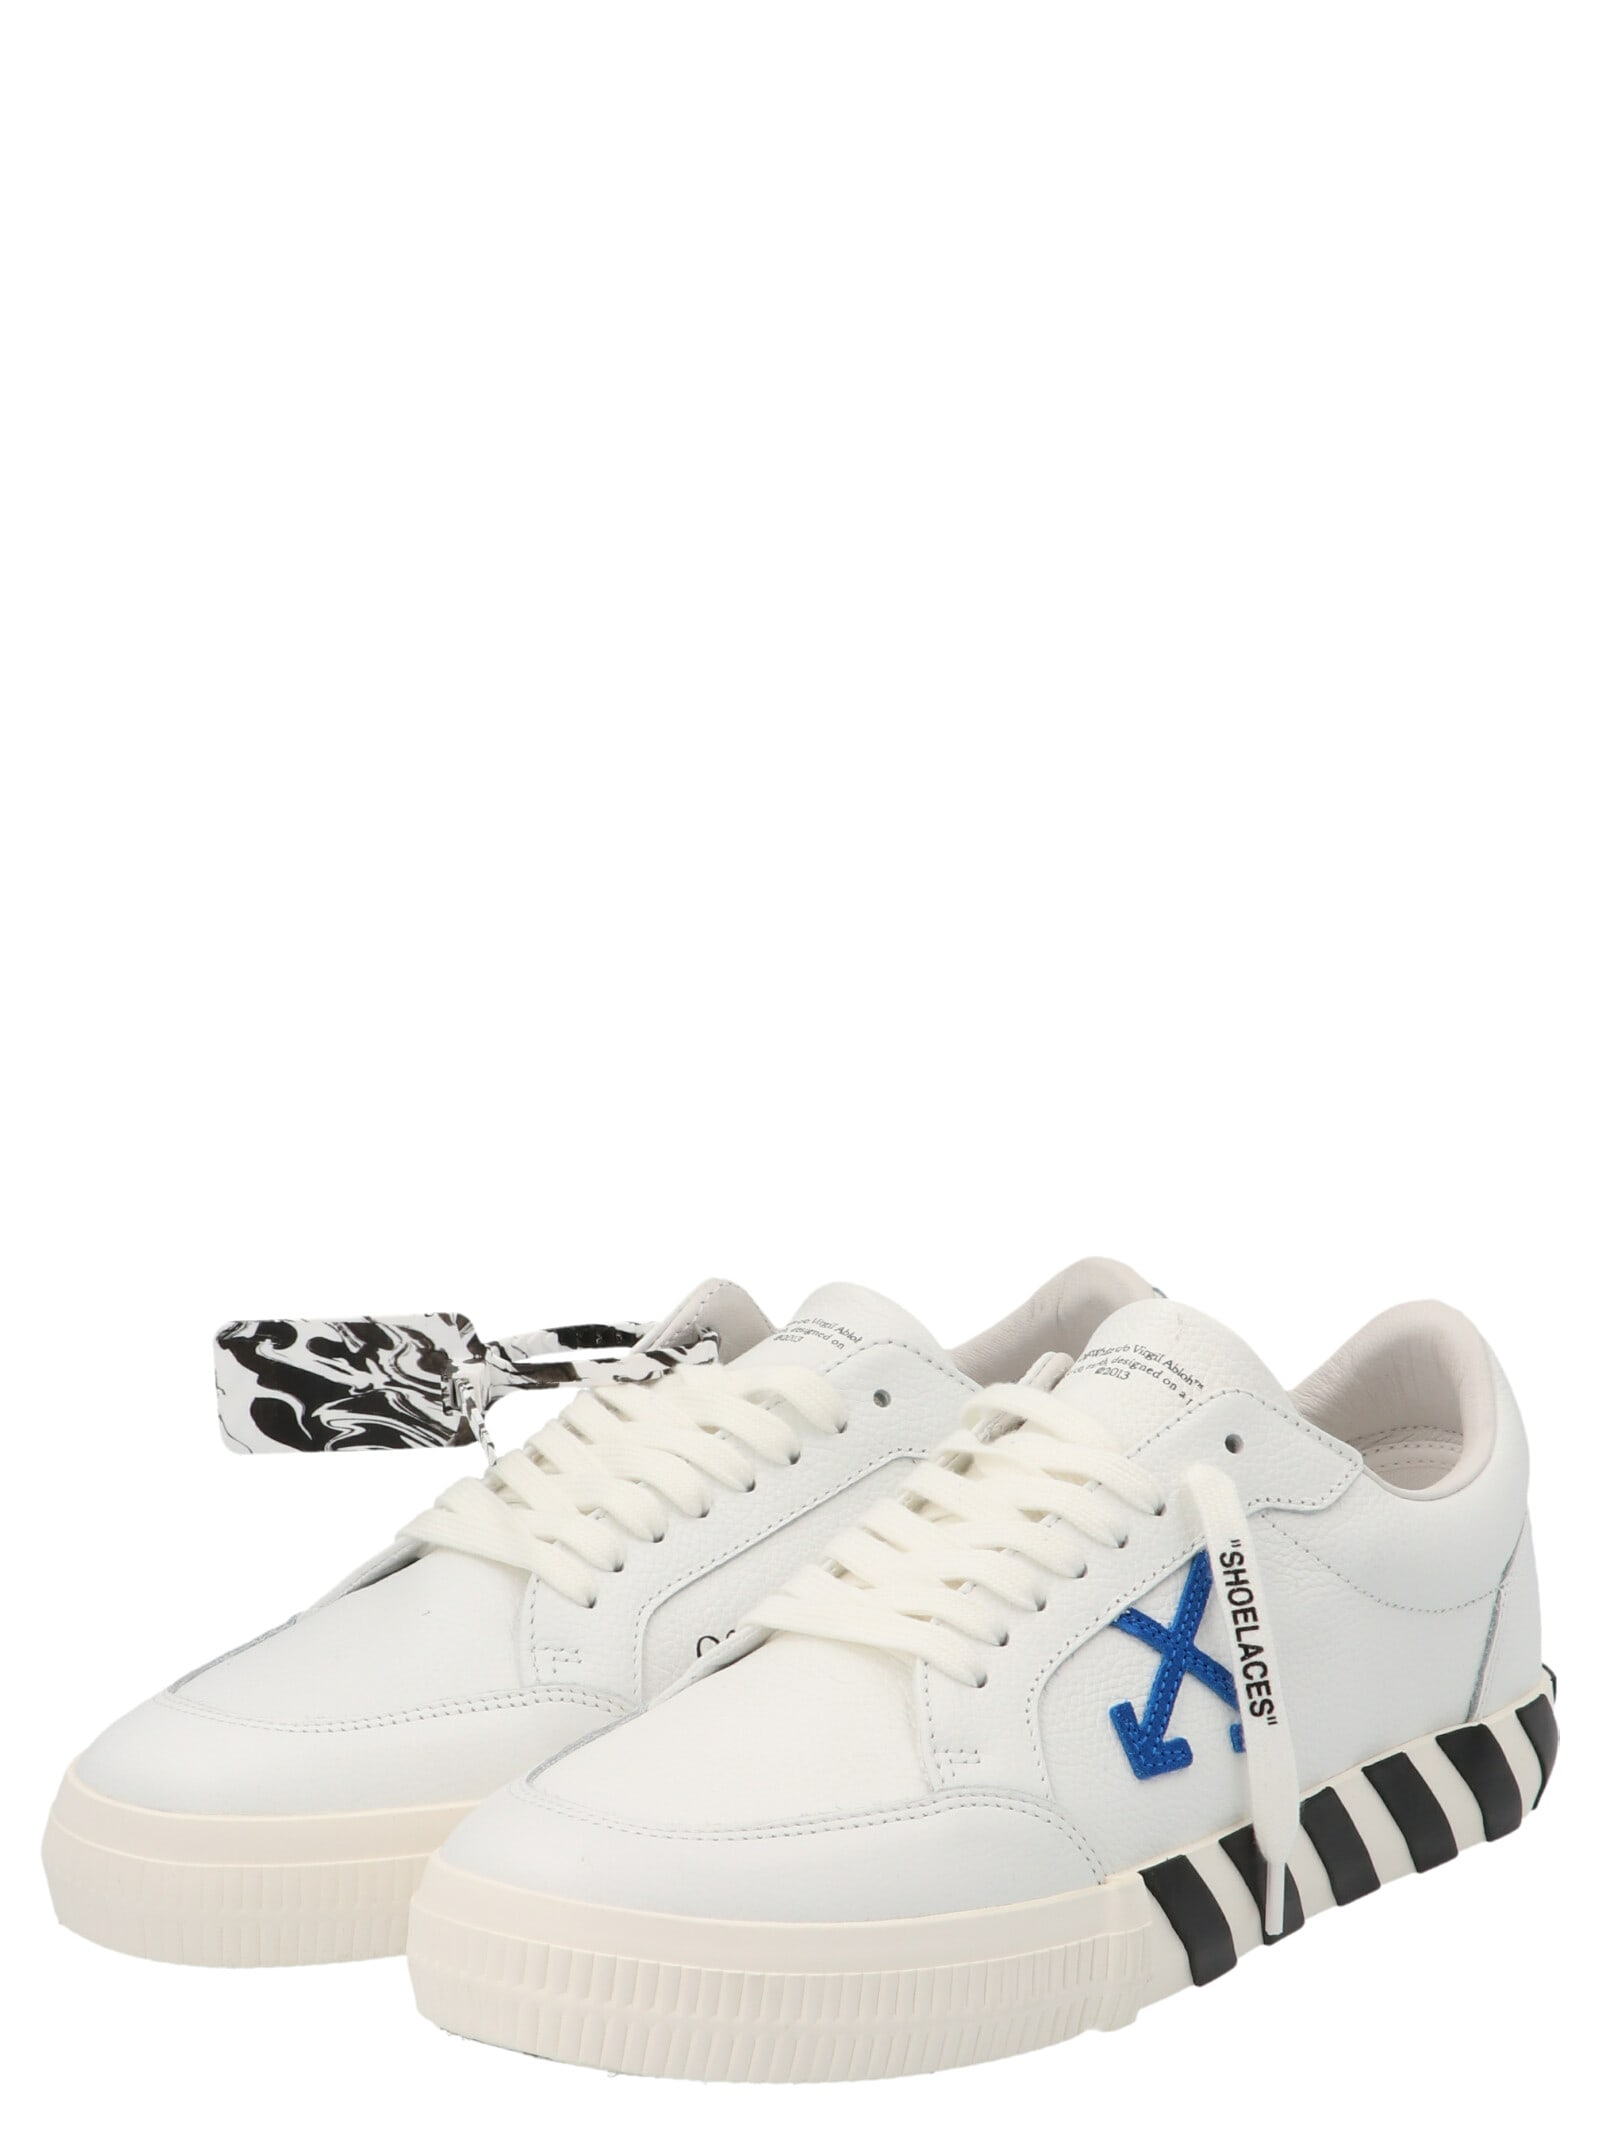 Off-White Canvases LOW VULCANIZED SHOES